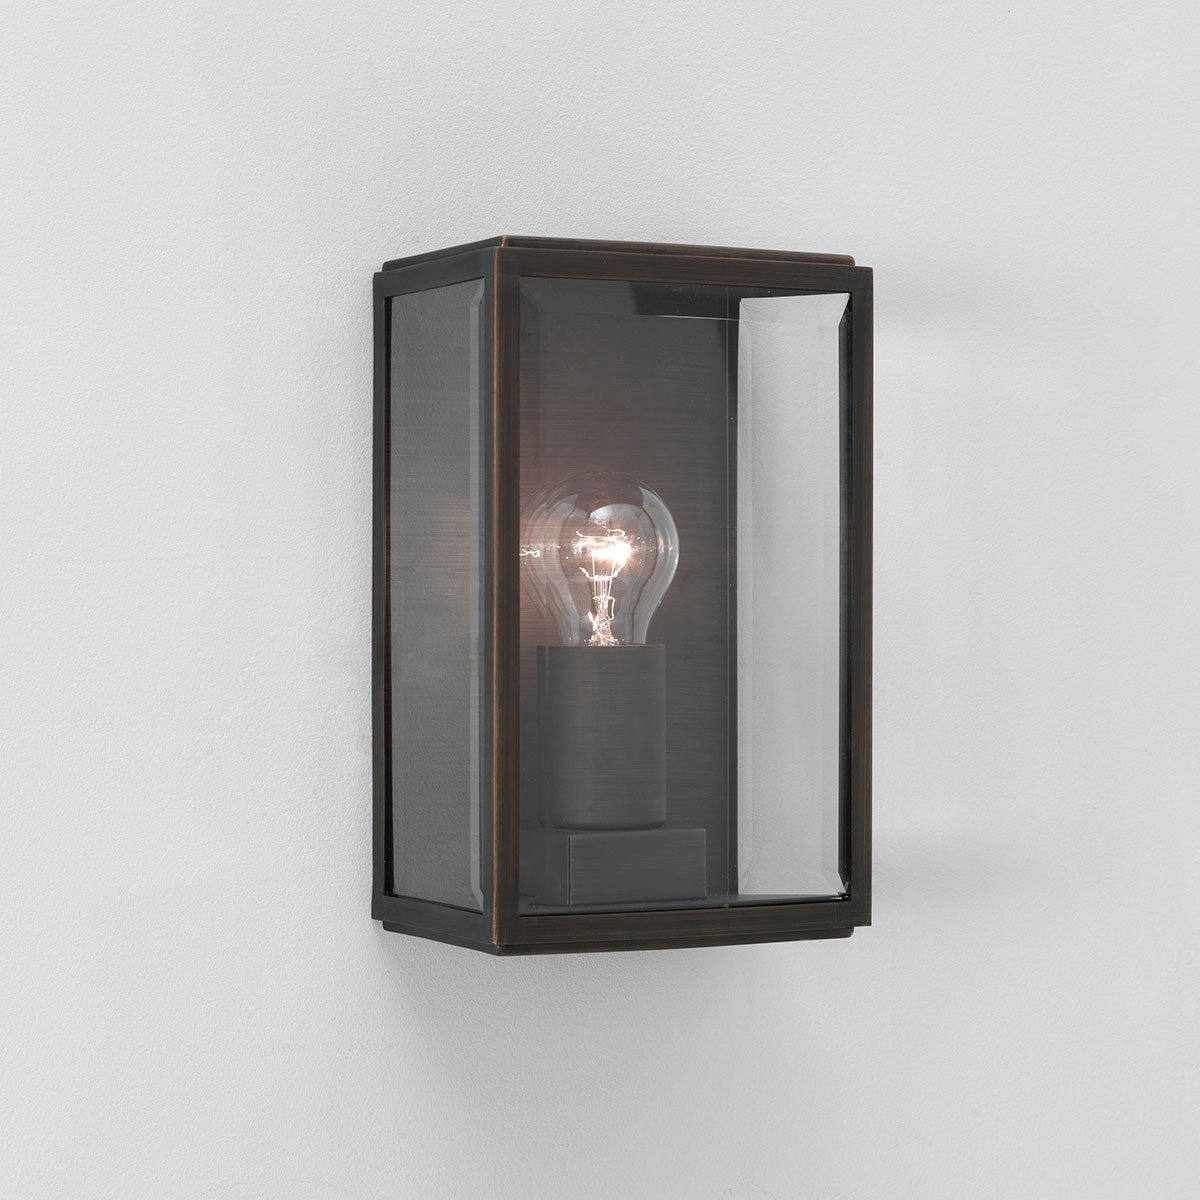 Luxury Exterior Wall Lights : Astro Homefield Bronze Outdoor Wall Light at UK Electrical Supplies.